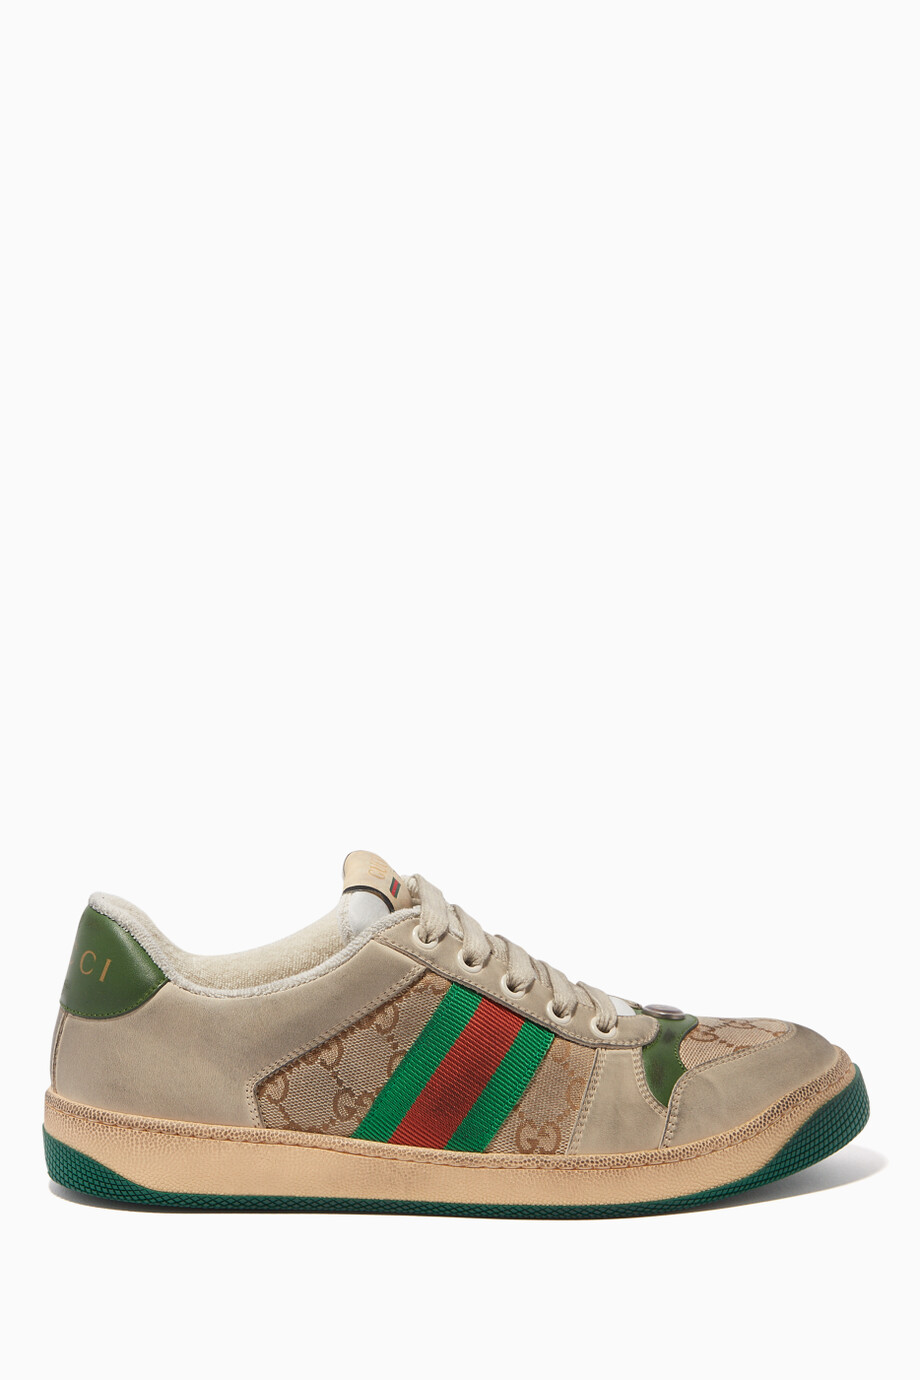 94844bc512 Shop Gucci Green Screener Leather Sneakers for Women | Ounass UAE